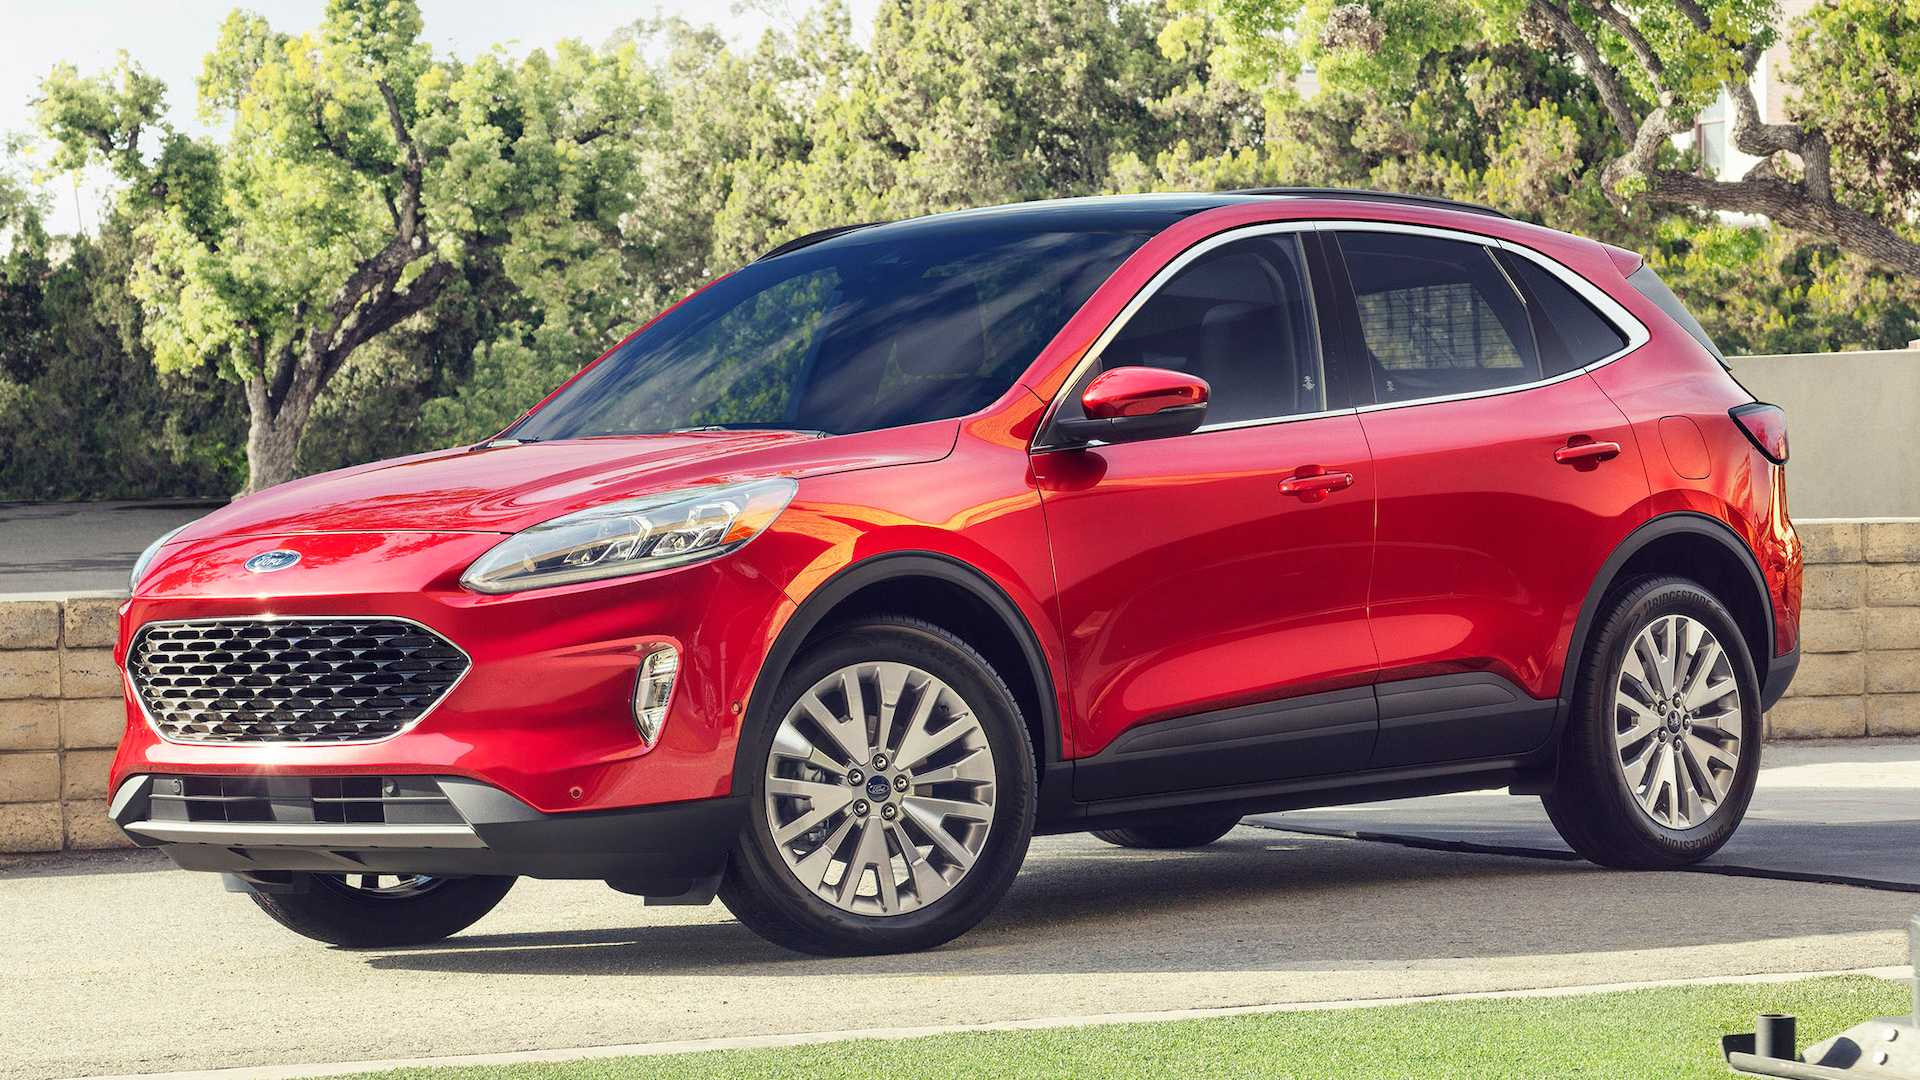 45 New 2020 Ford Crossover Reviews